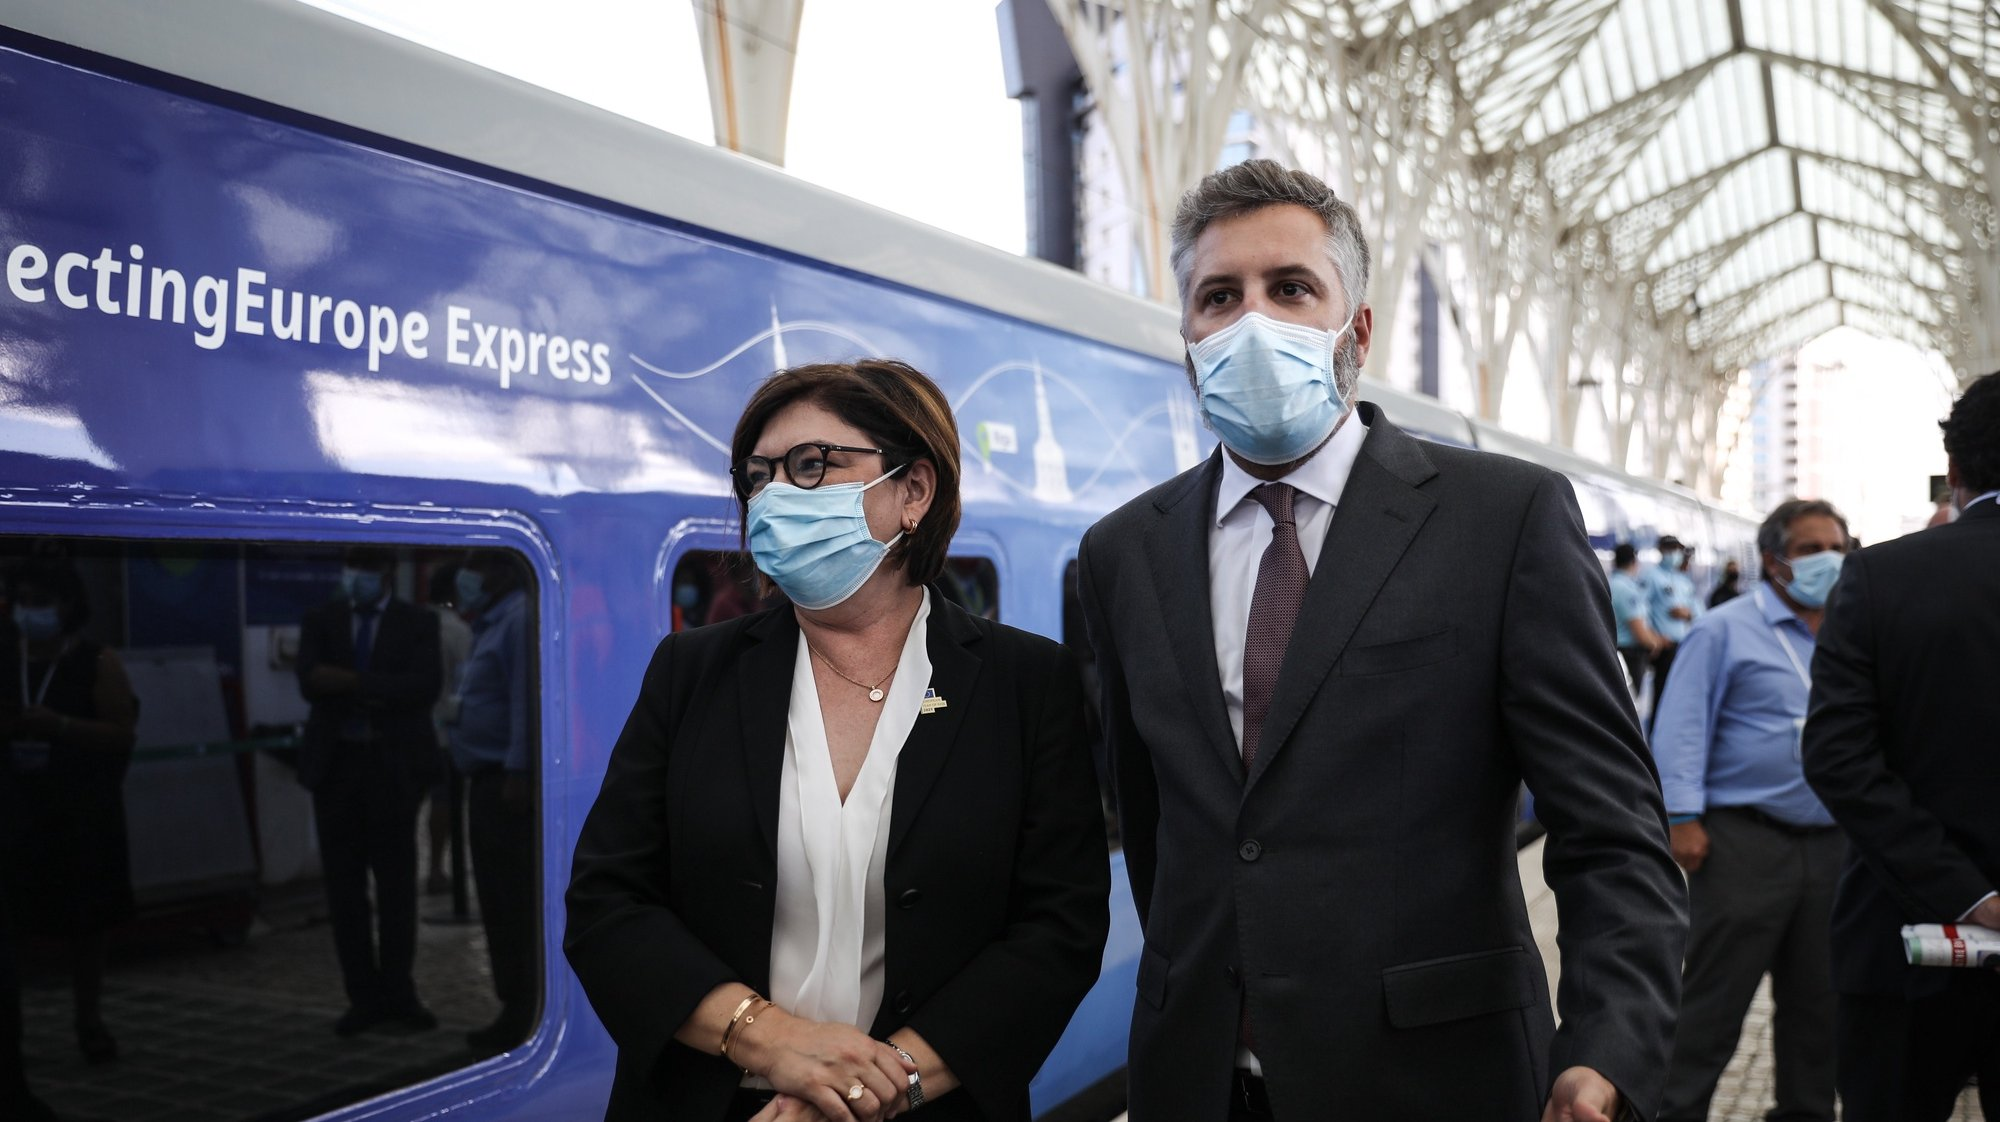 epa09443294 European Commissioner for Transports Adina Valean (L) and Portuguese Minister of Infrastructure and Housing Pedro Nuno Santos (R) moments before the train departure during the Connecting Europe Express ceremony in Gare do Oriente train station in Lisbon, Portugal, 02 September 2021.  EPA/RODRIGO ANTUNES